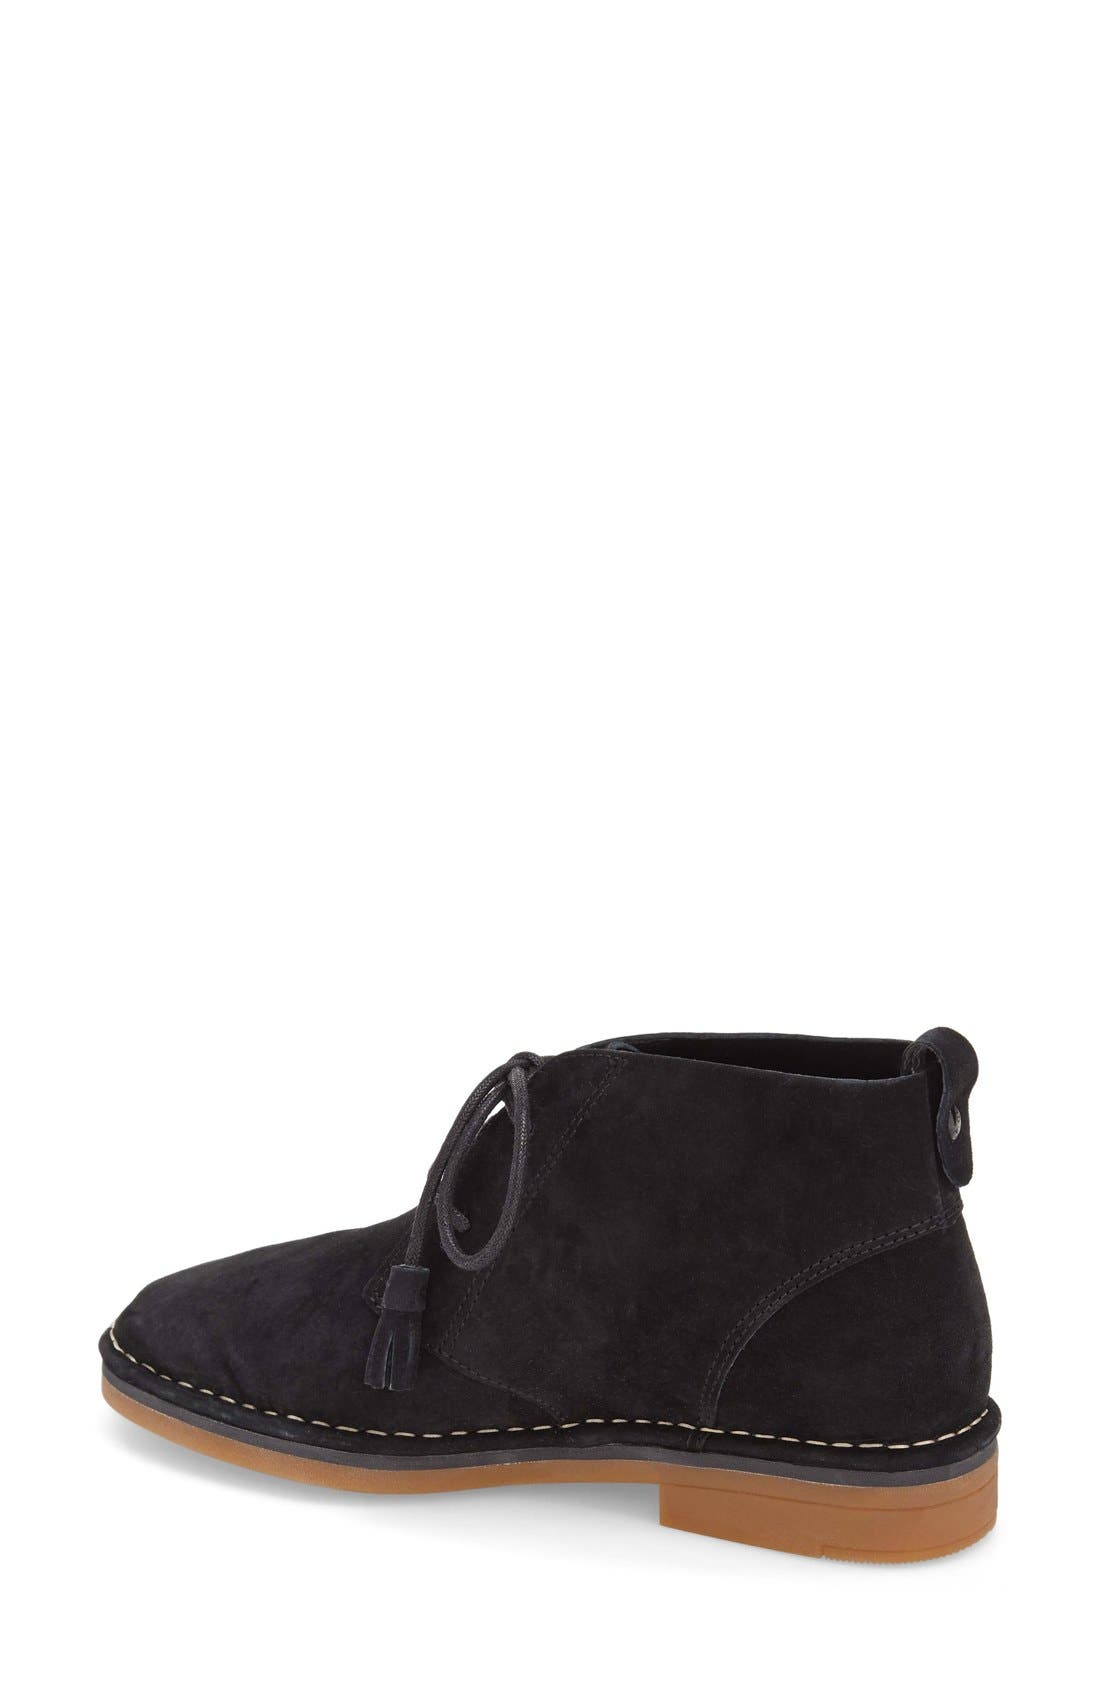 HUSH PUPPIES<SUP>®</SUP>, Cyra Catelyn Chukka Boot, Alternate thumbnail 3, color, BLACK SUEDE